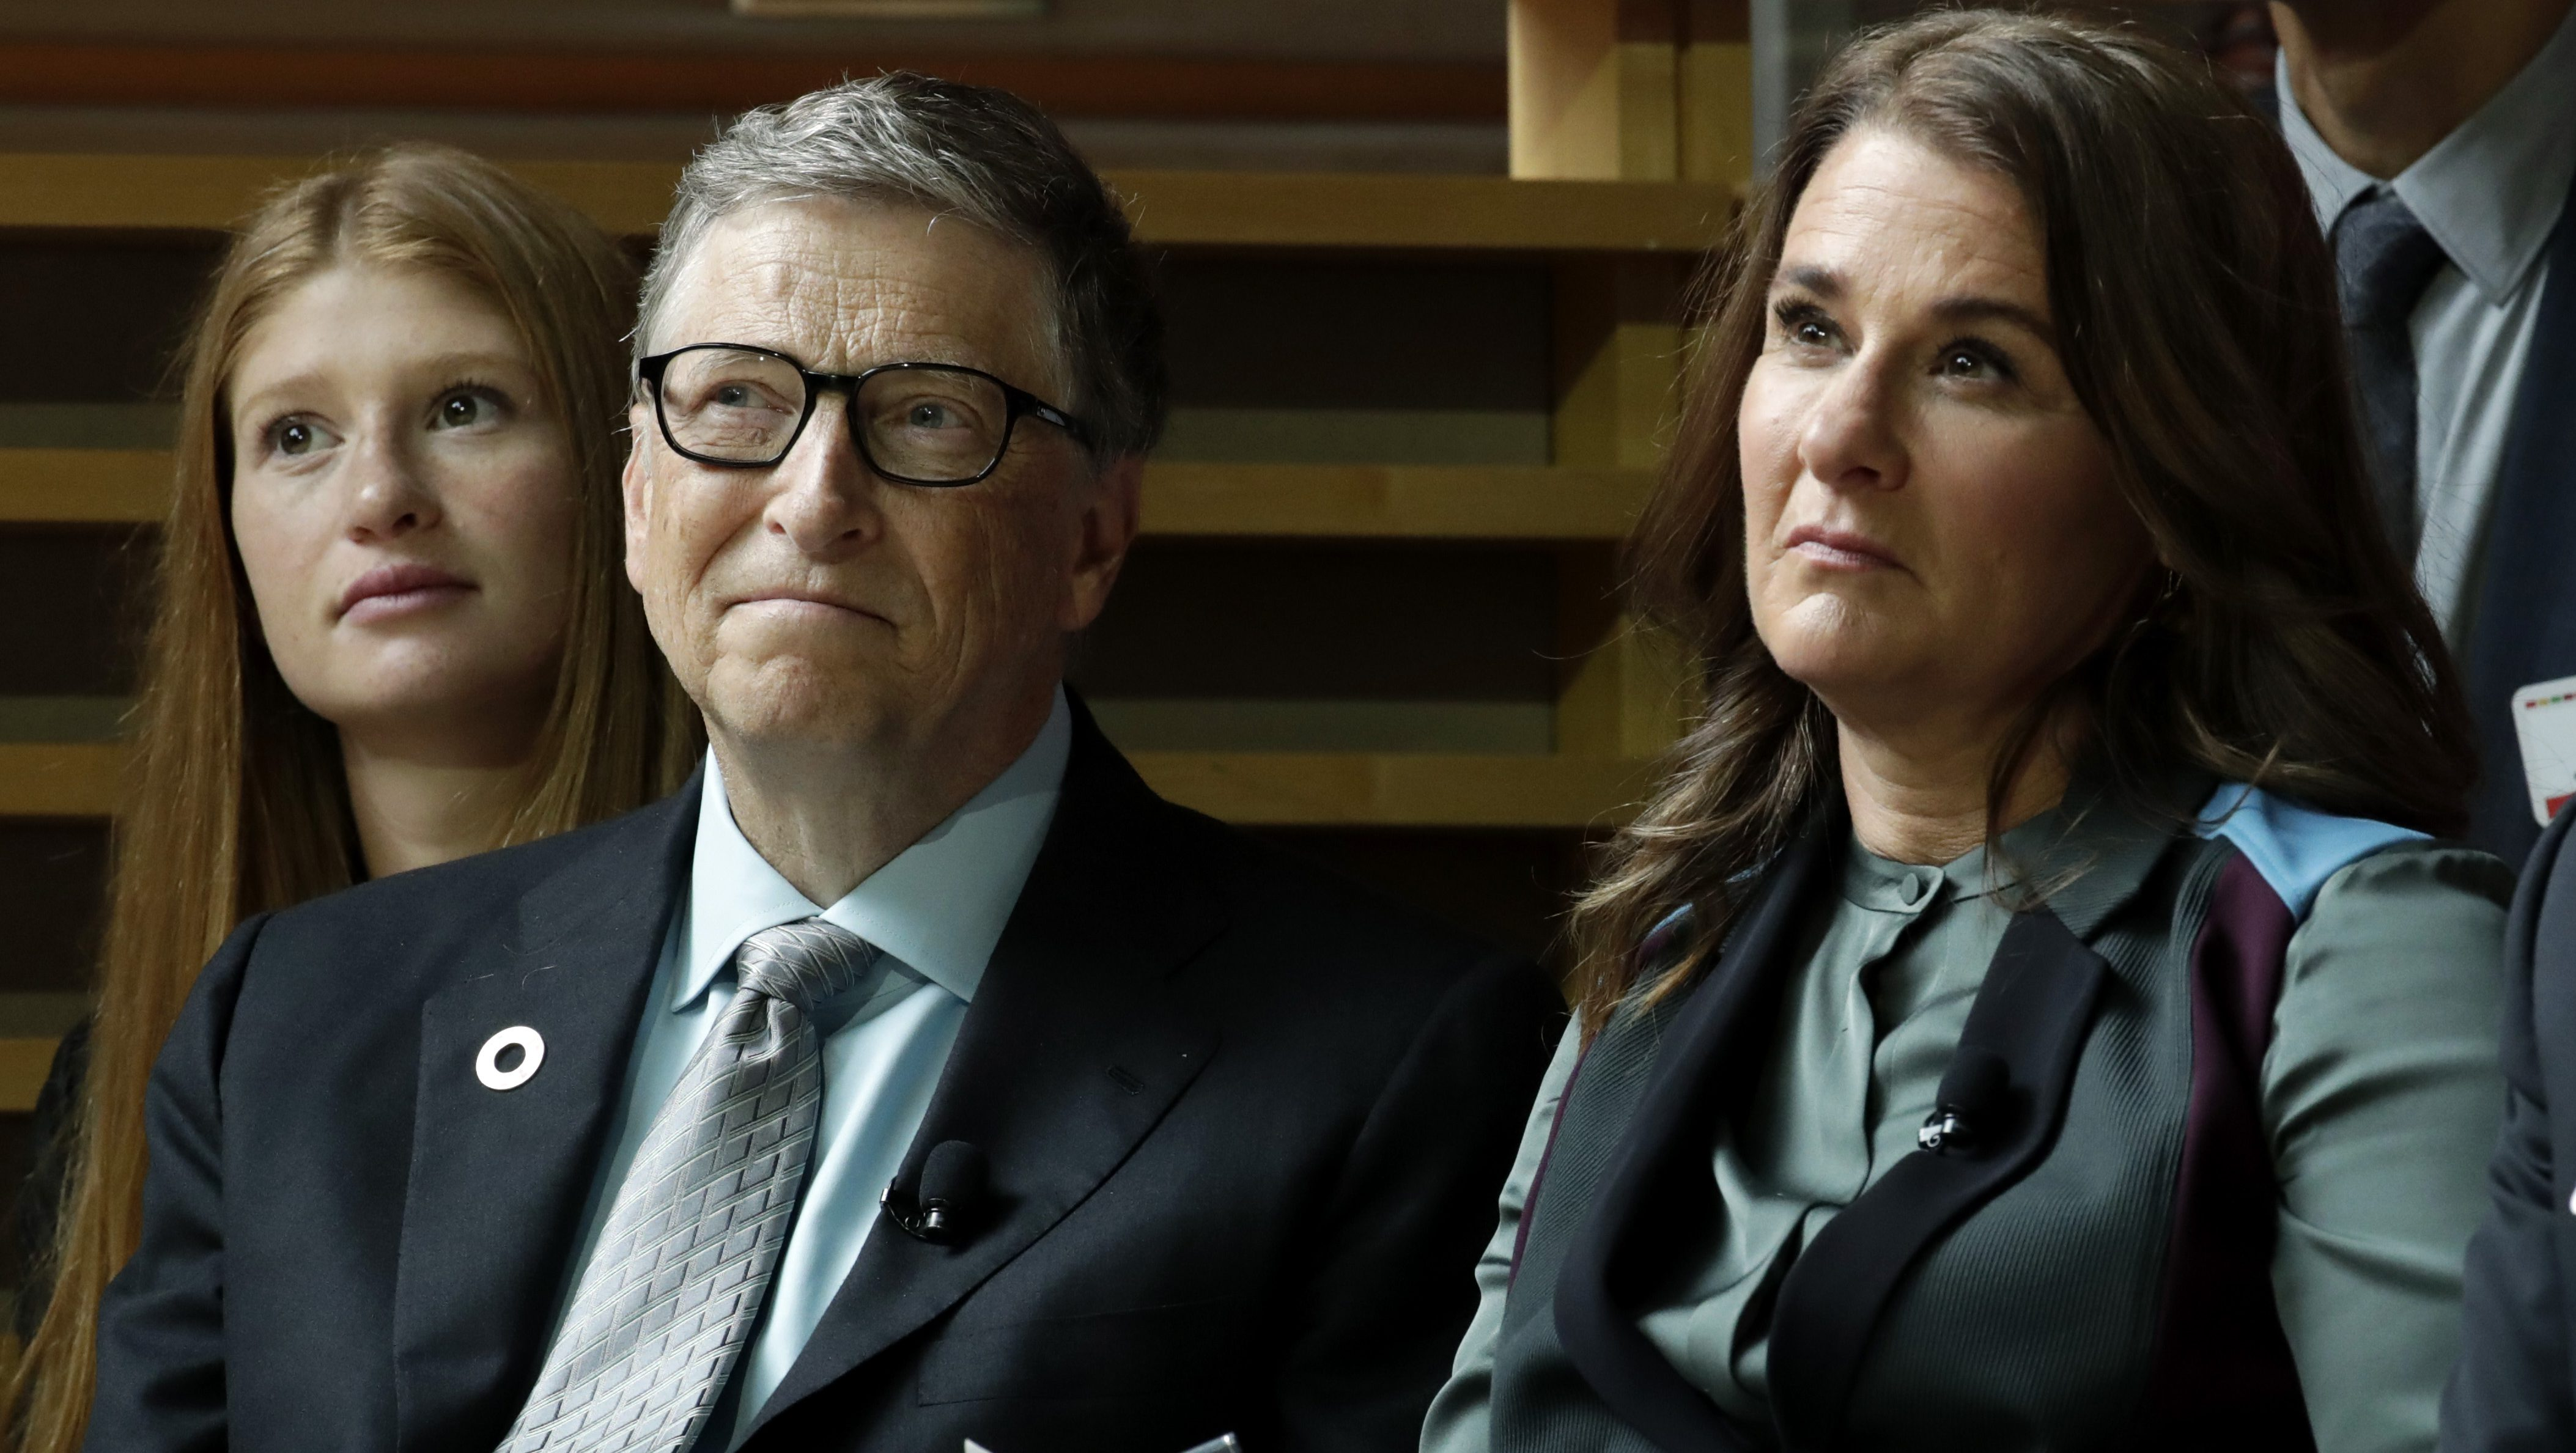 Bill Gates, left, and his wife, Melinda Gates, listen to former President Barack Obama speaks during the Goalkeepers Conference, Wednesday, Sept. 20, 2017, in New York. (AP Photo/Julio Cortez)